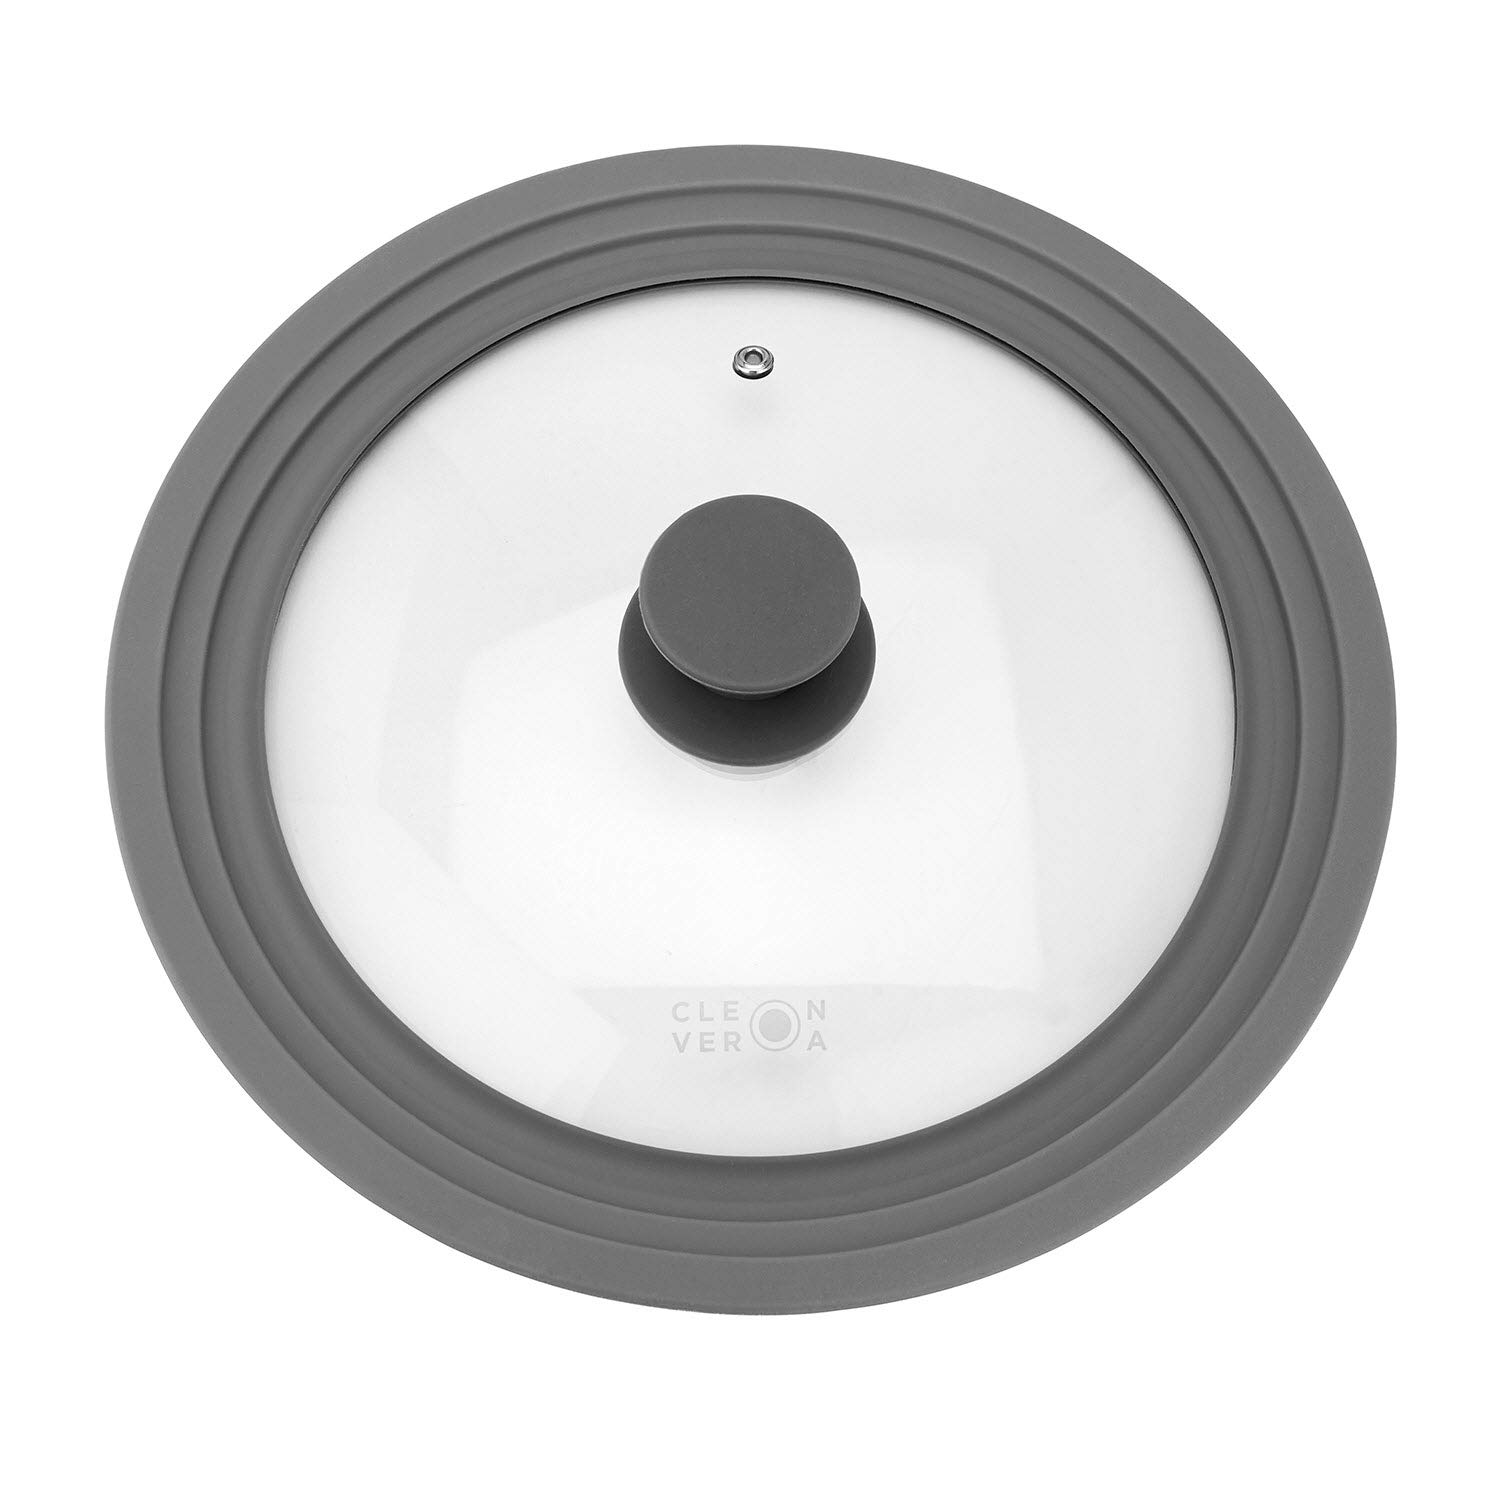 Cleverona Clever Lid - Universal Pan Lid - Large fits 9.5/10/11 inch pans - Dark Grey